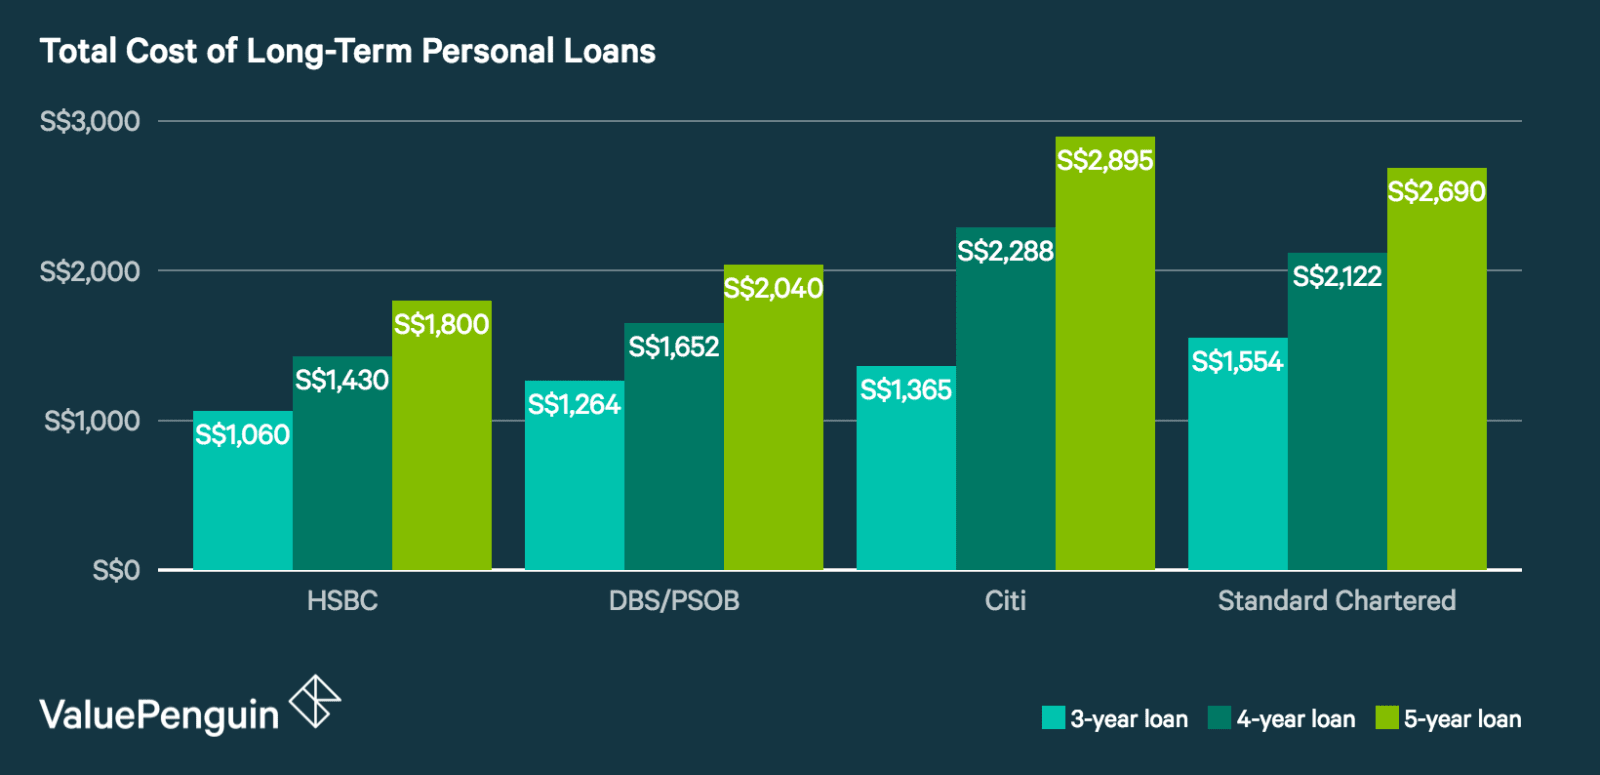 Total Cost of Long-Term Personal Loans